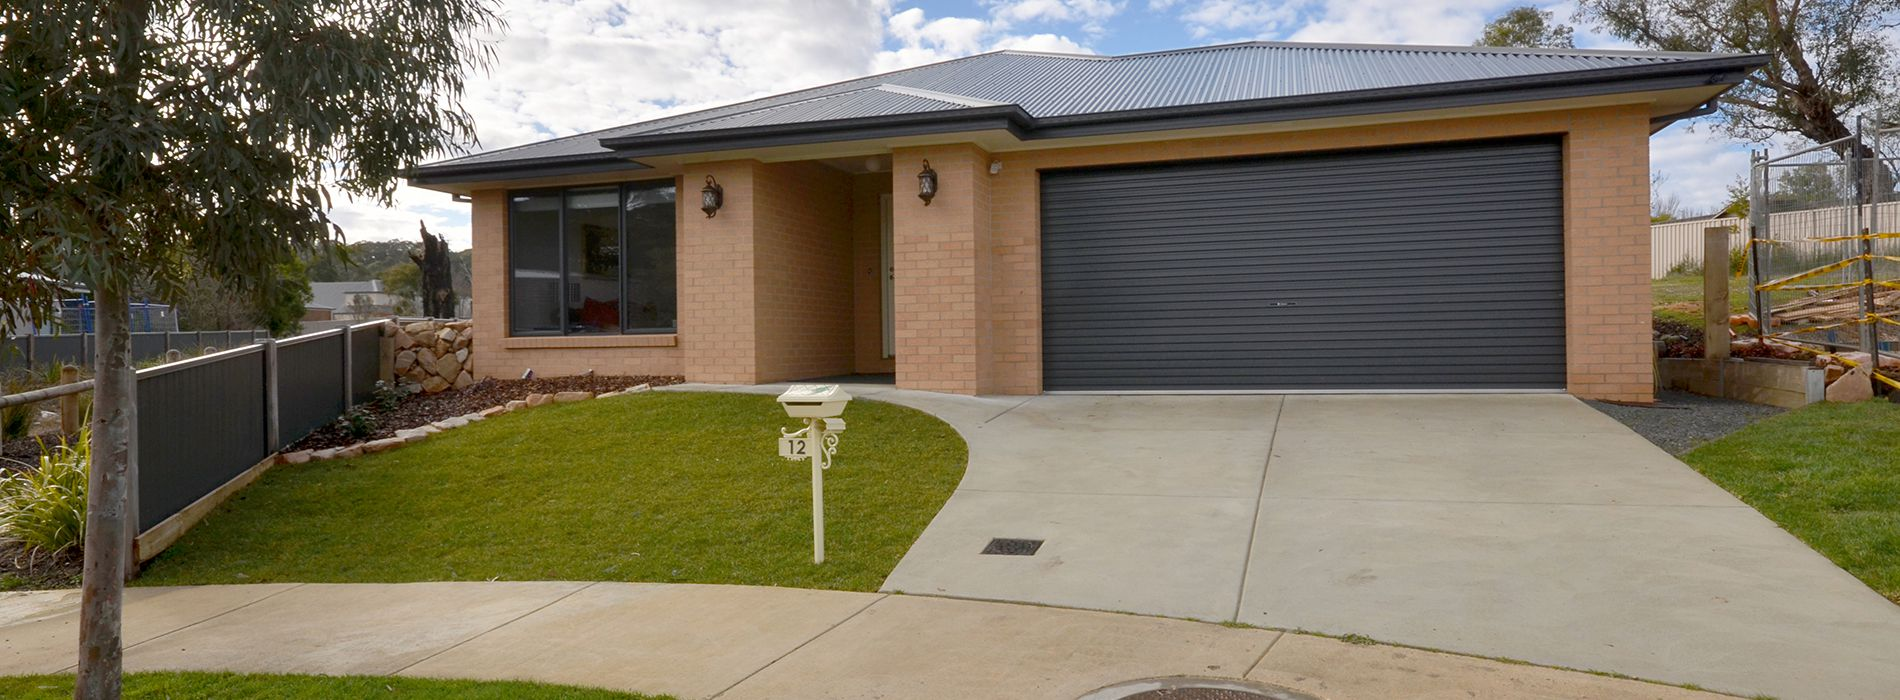 12 Orkney Court, Ballarat North